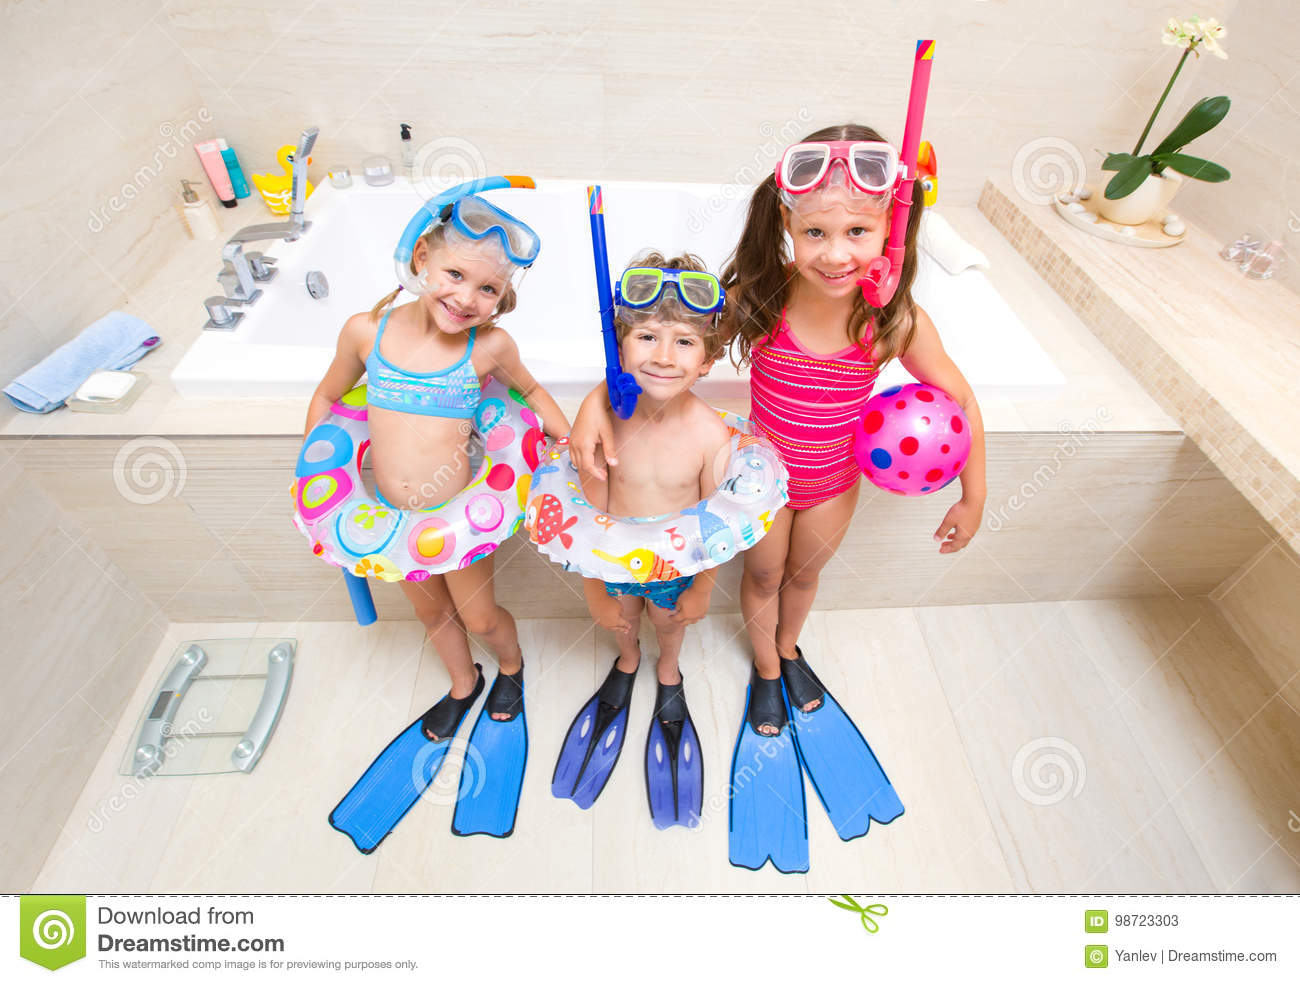 48630f2563e7e Children Play In The Bathroom Stock Image - Image of family, human ...